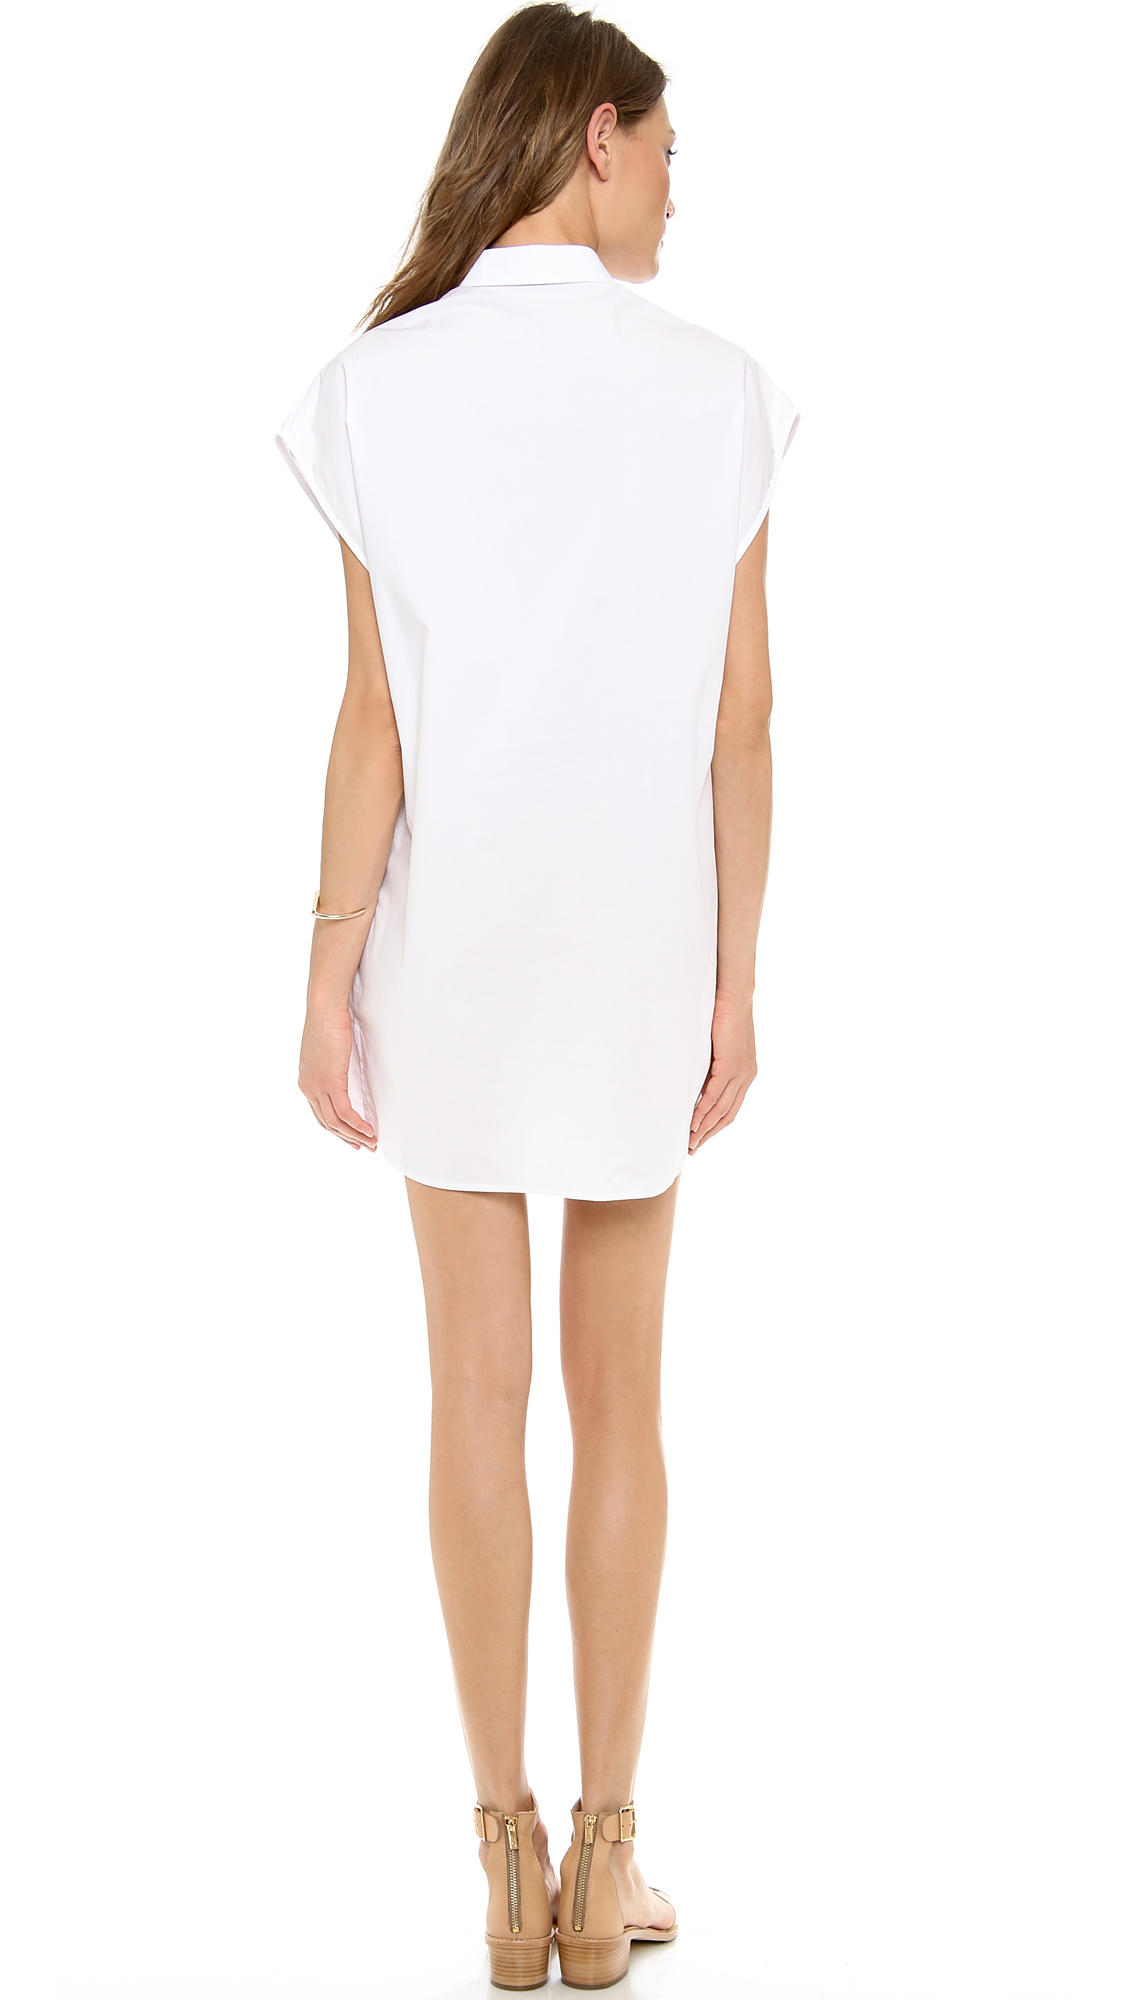 Lyst emma cook embroidered shirt dress in white for How to embroider a shirt